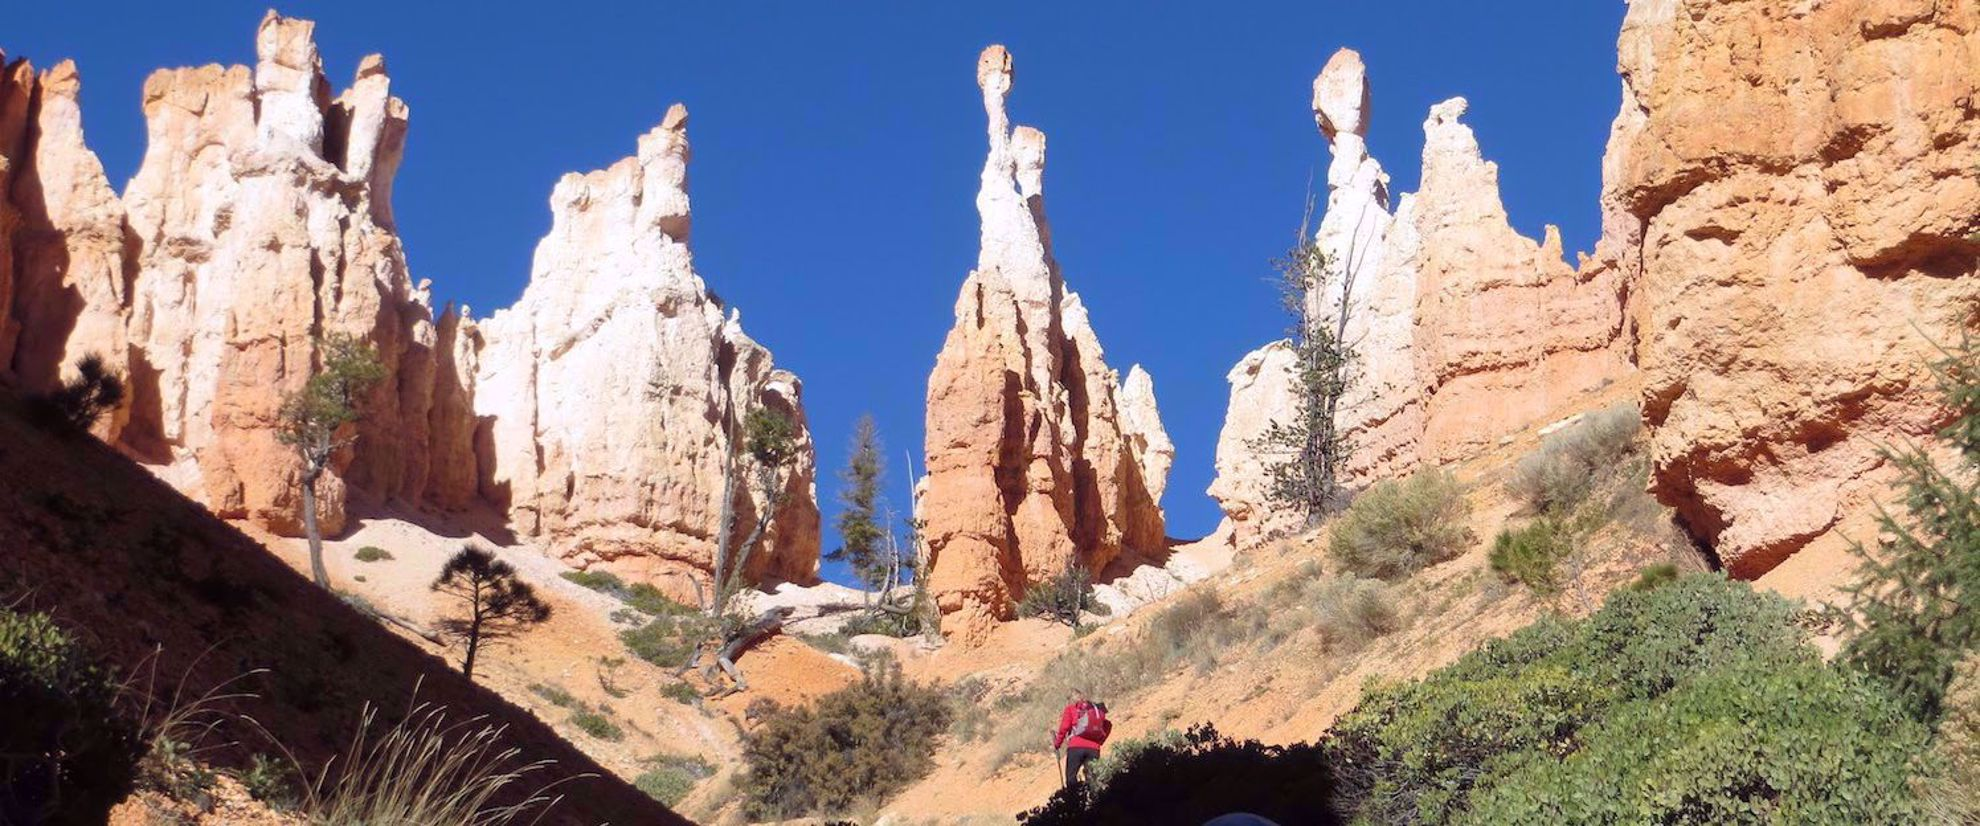 rock spires in sunshine at moab national park